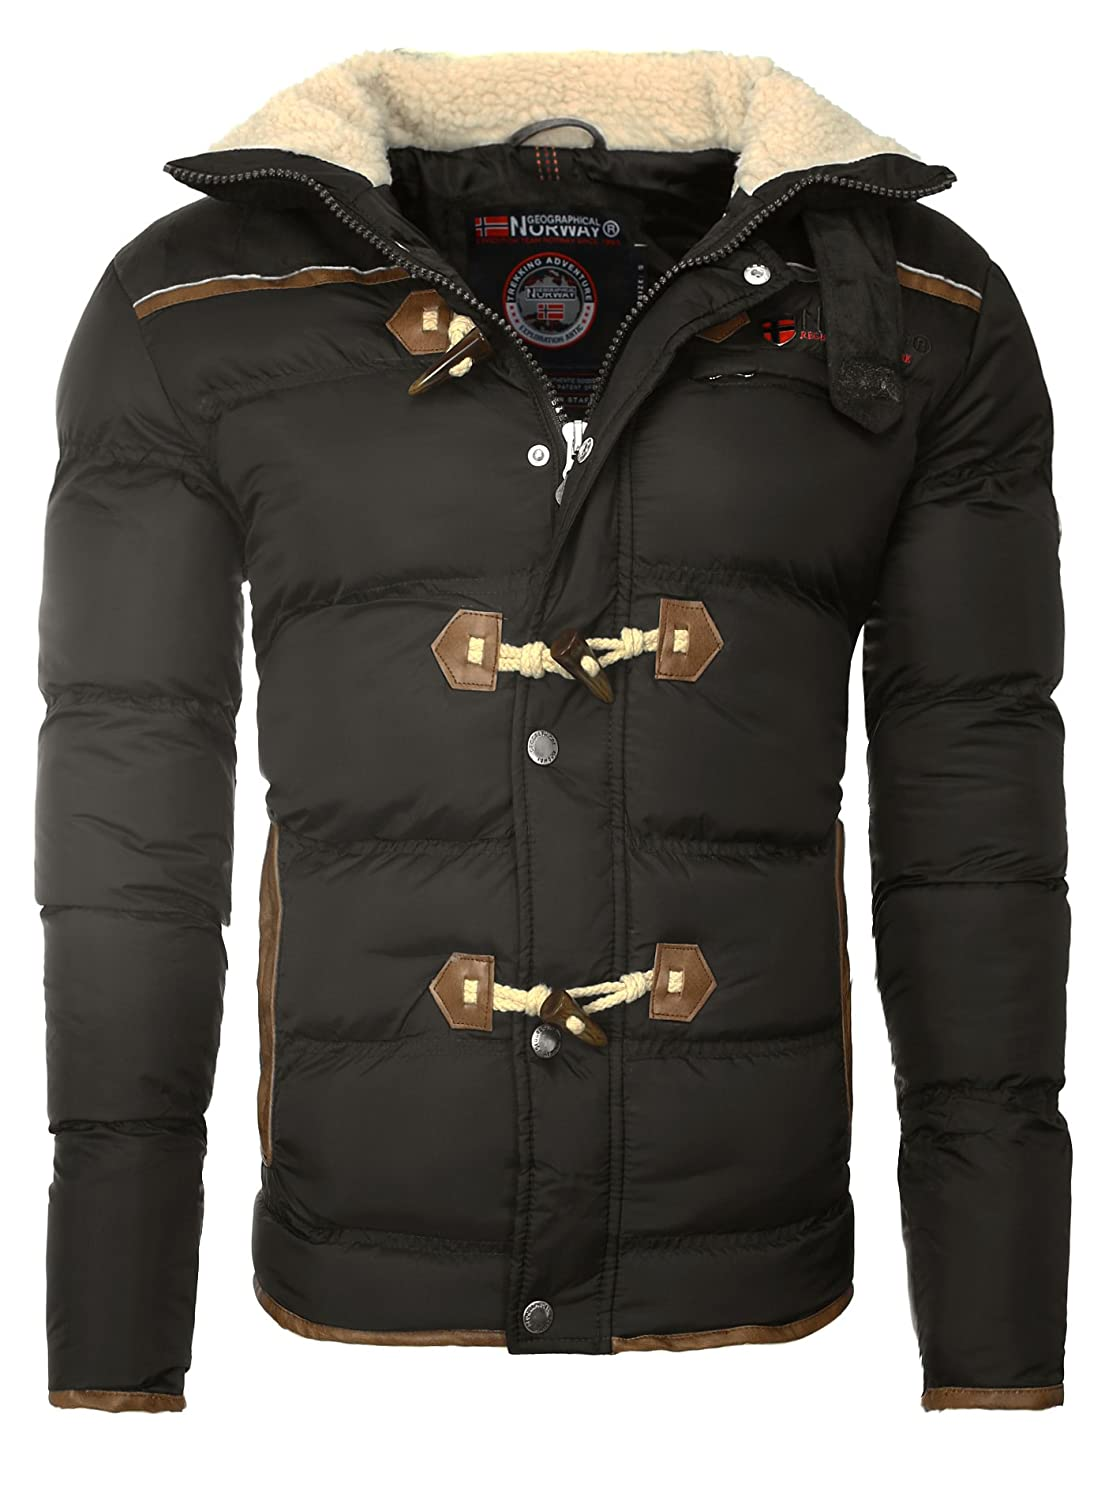 Geographical Norway para Hombre Chaqueta